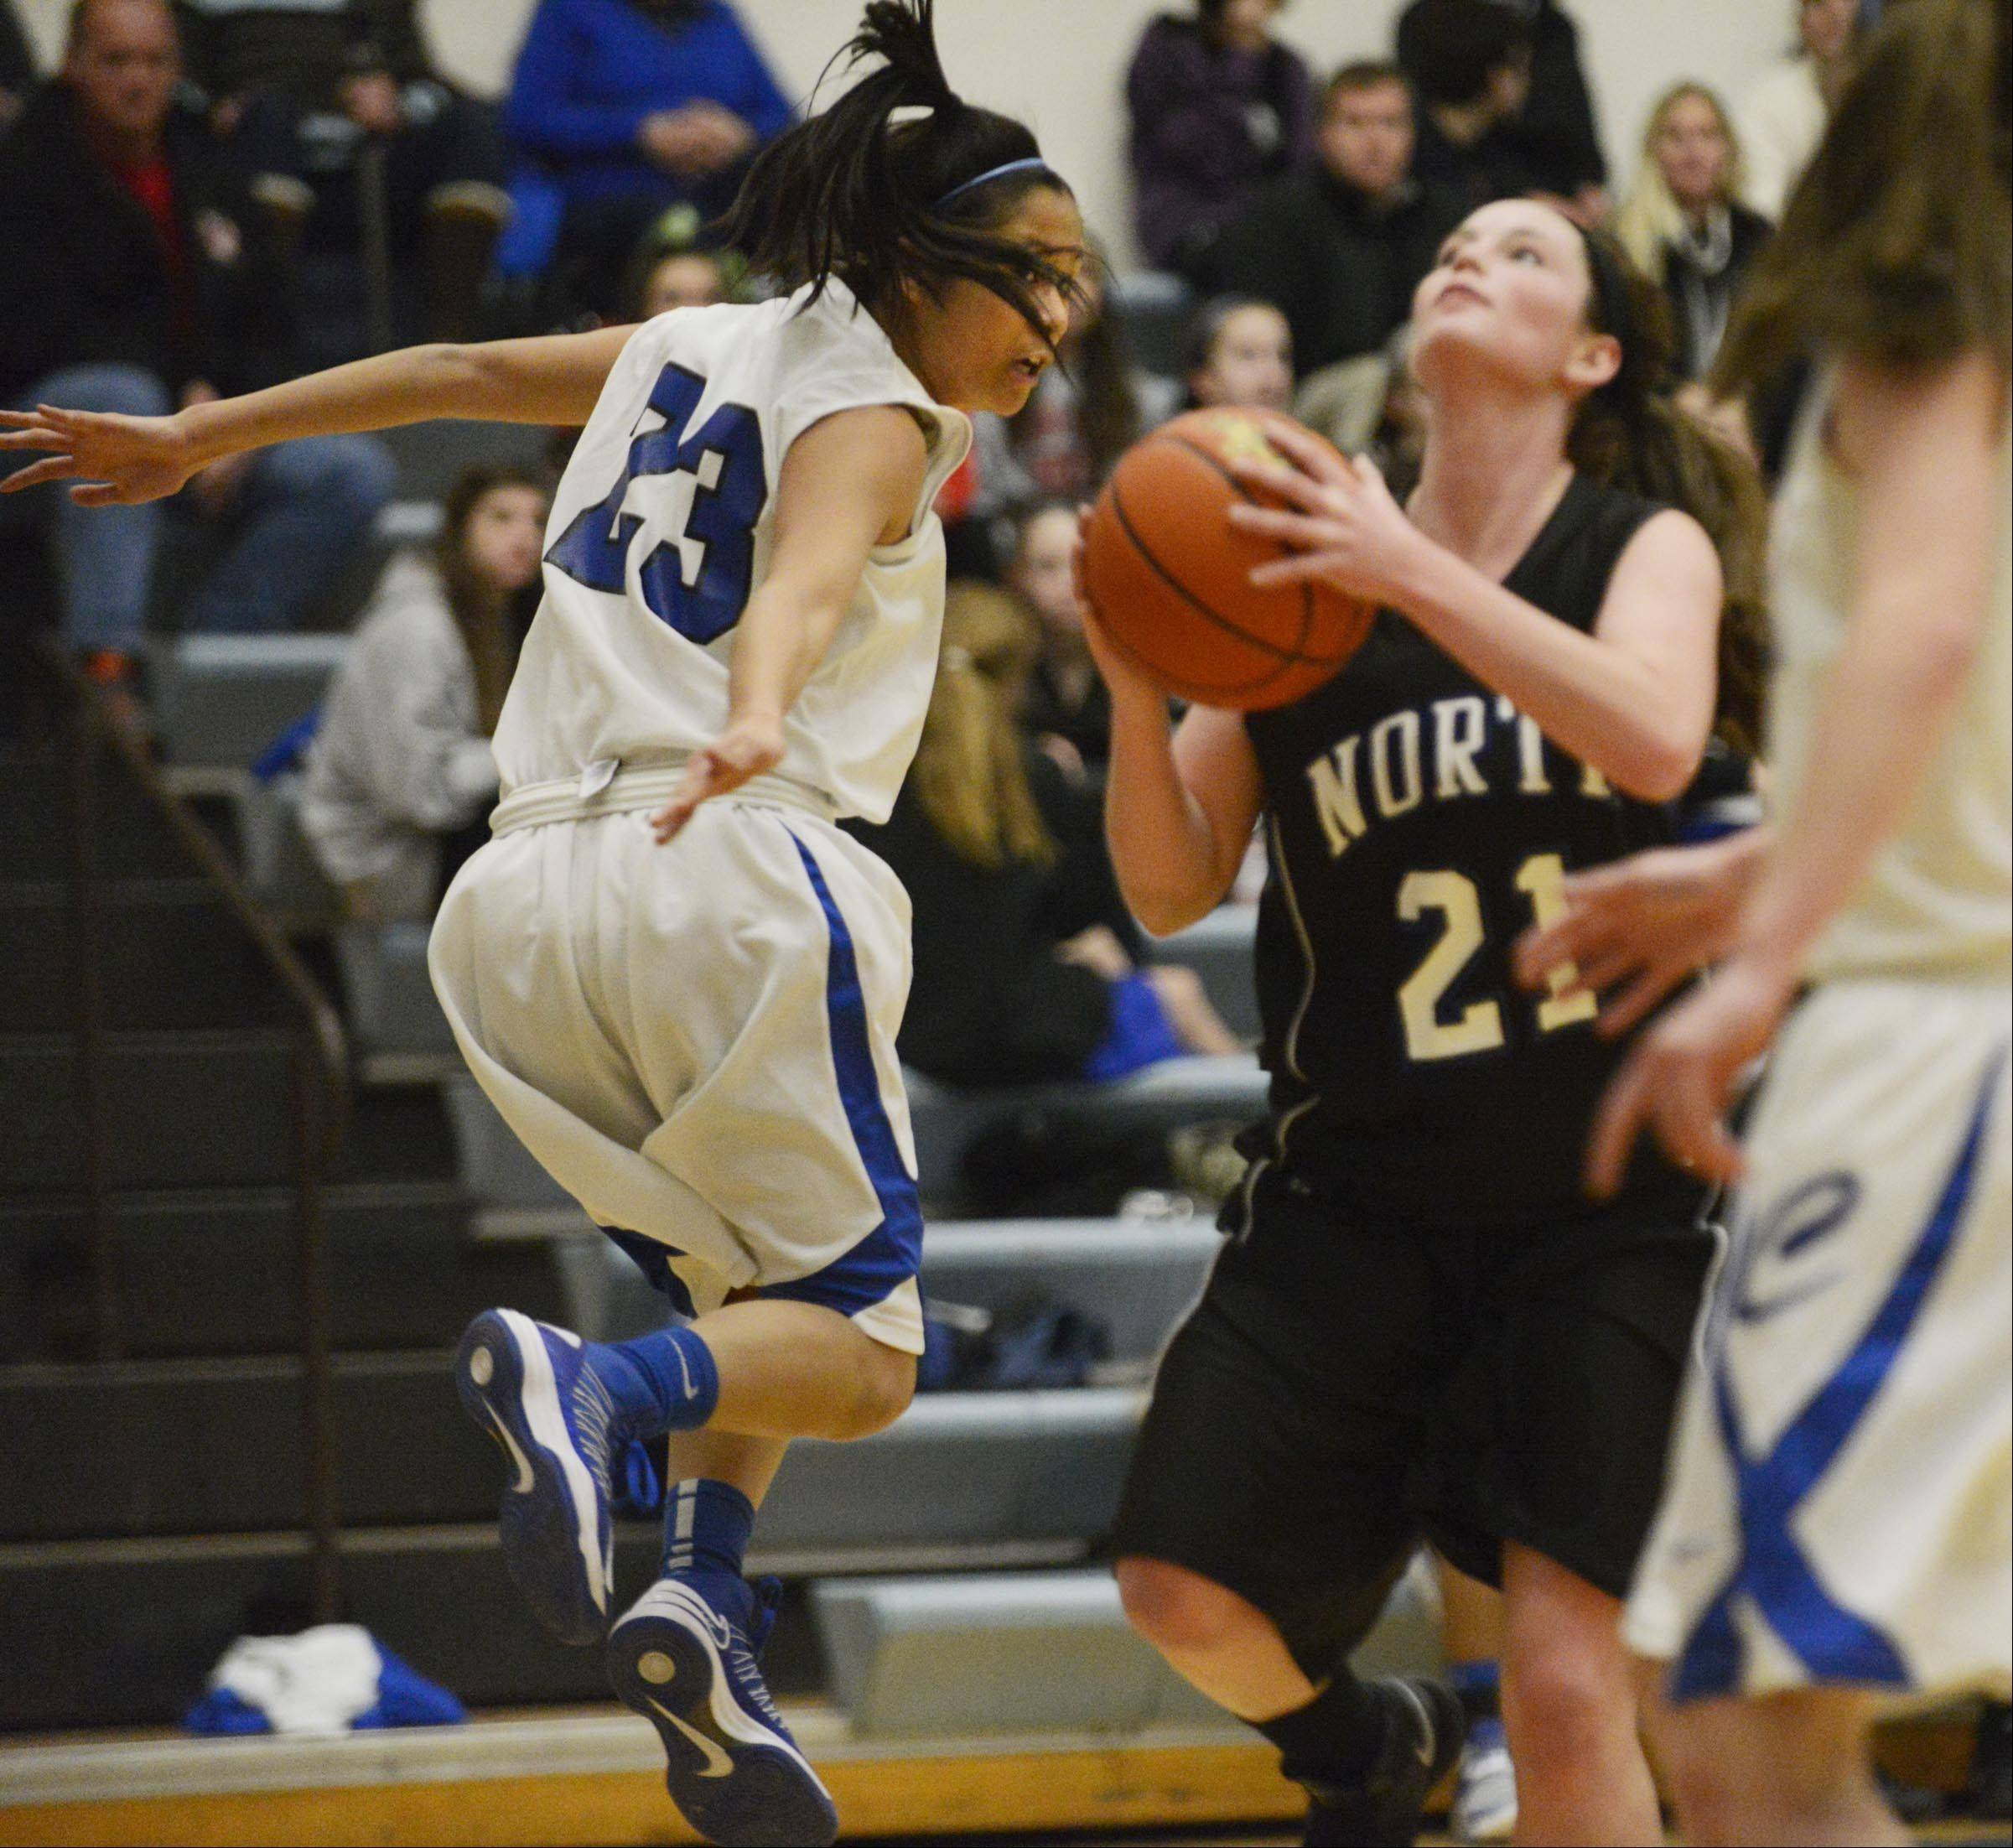 Burlington Central's Camille Delacruz flies past St. Charles North's Alex Silverman.